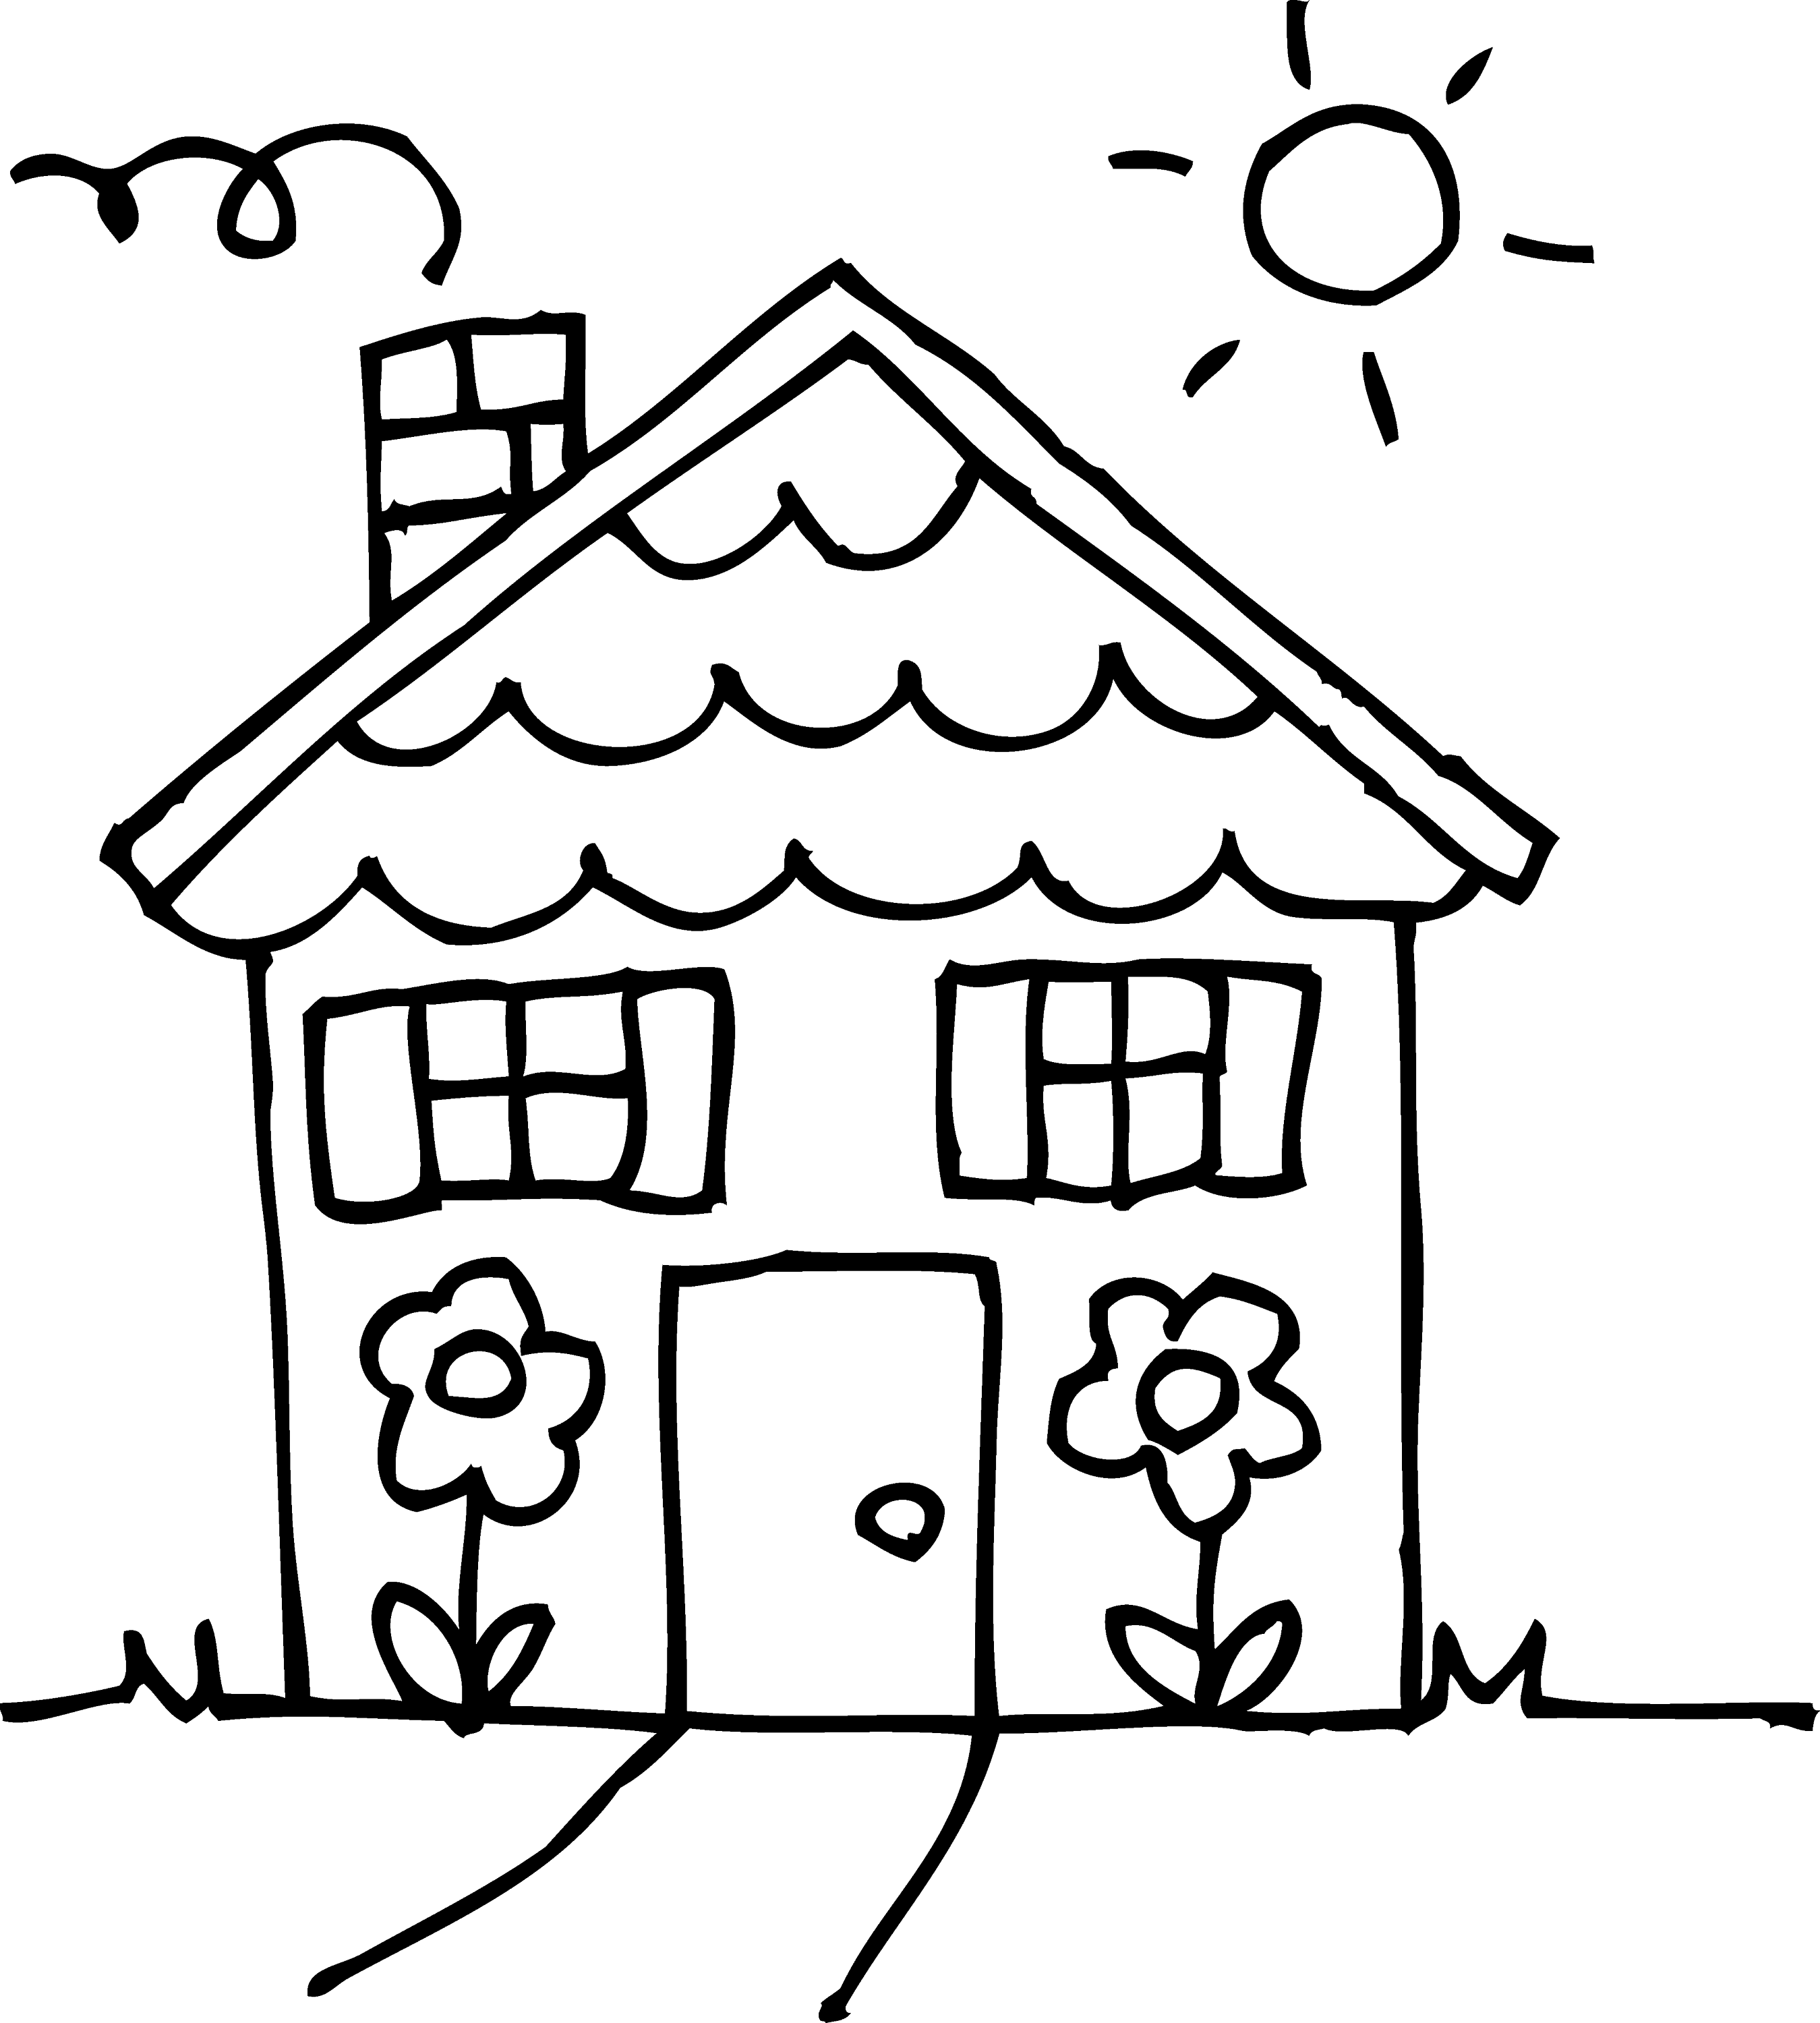 Free Outline Of House Coloring Pages